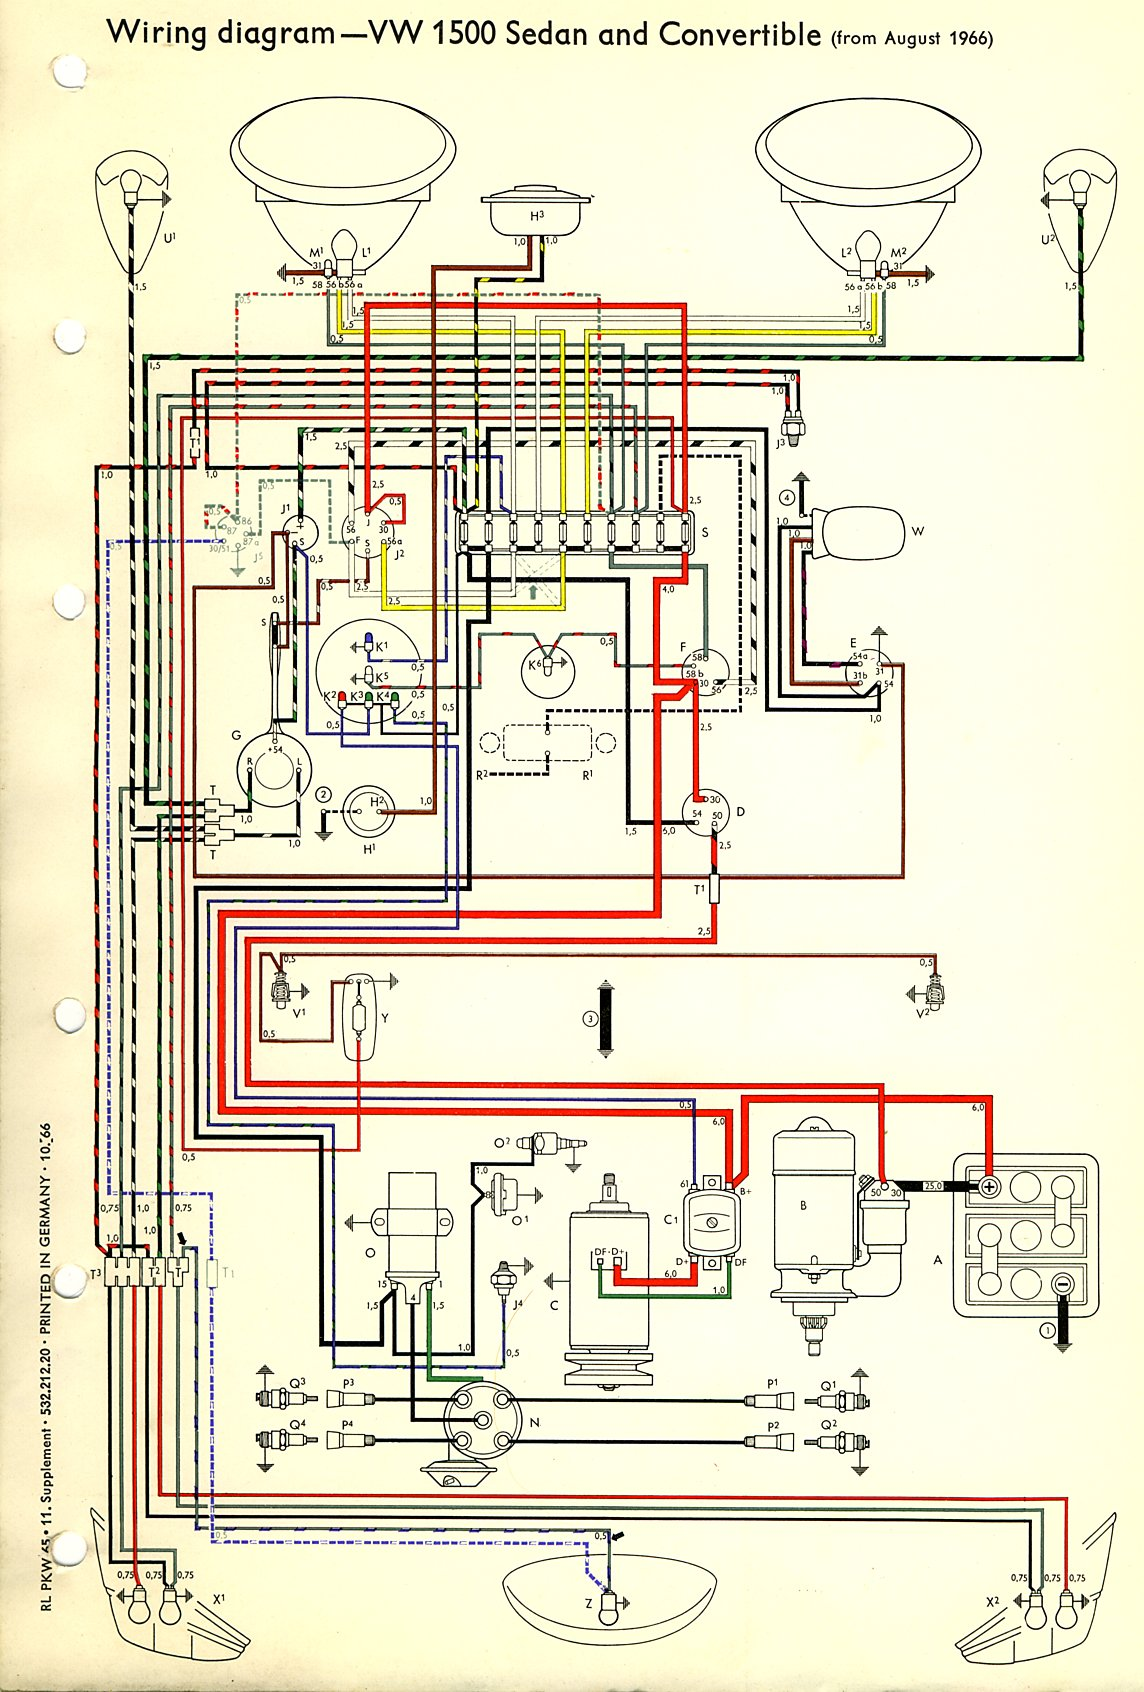 1974 vw alternator wiring diagram annavernon 1975 vw beetle alternator wiring diagram solidfonts thesamba com type 2